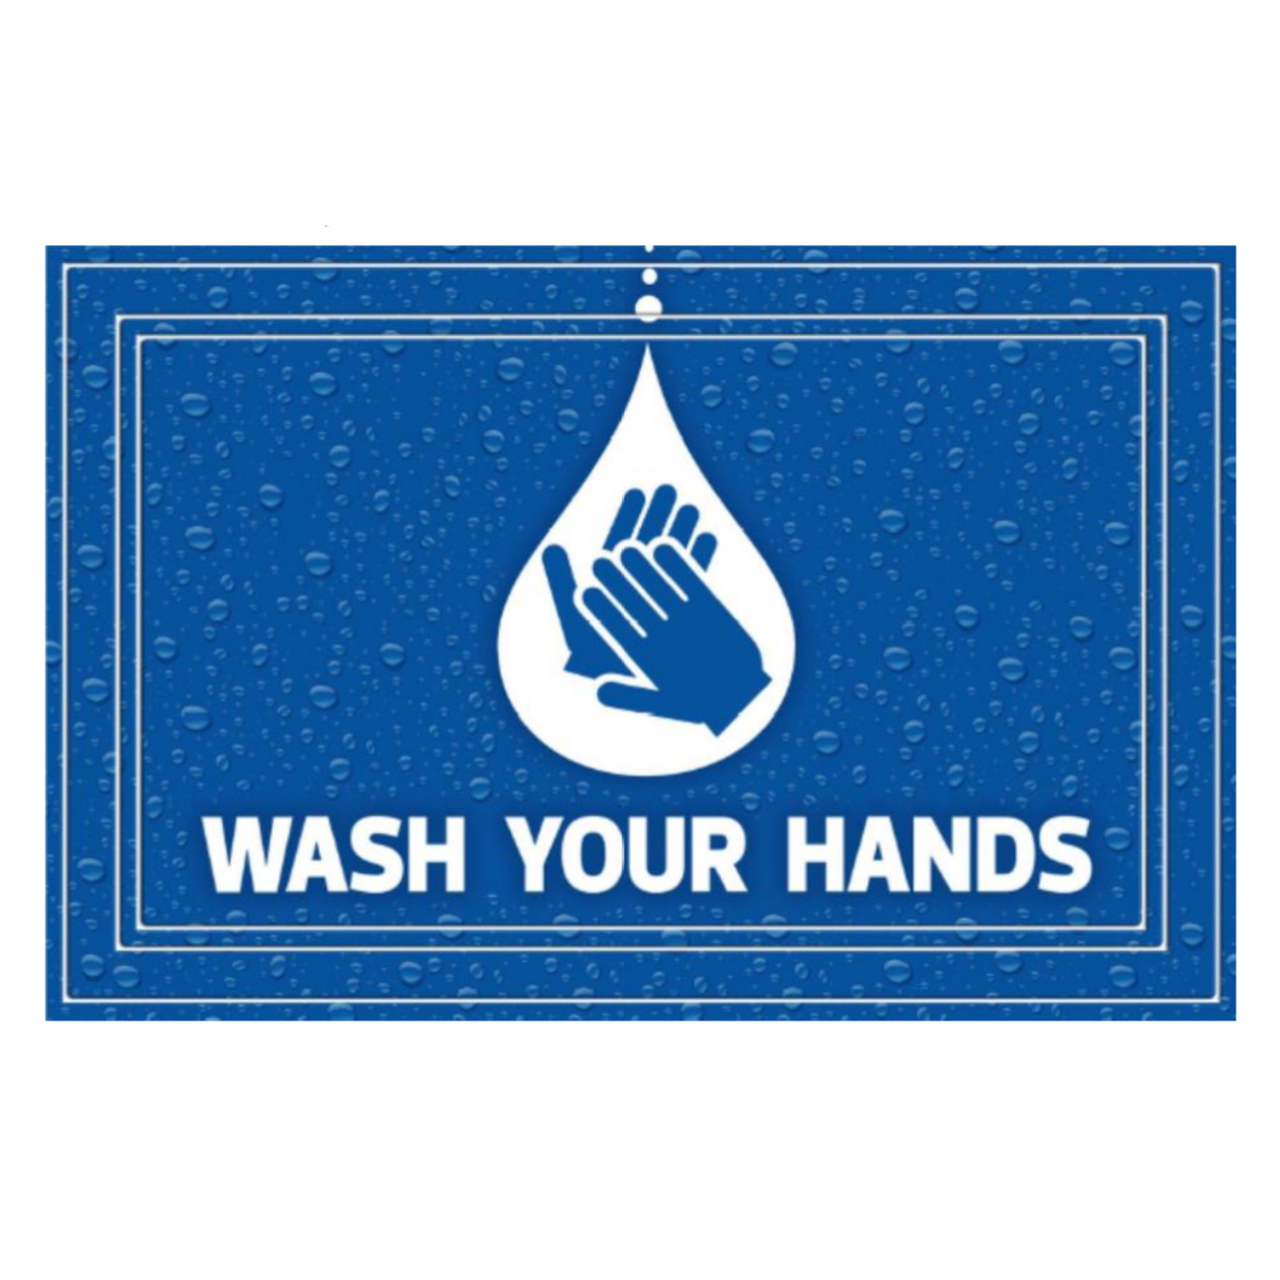 "13-39845288202400036 - SANIGUARD Germ Protection Awareness Rubber Molded Recycled Mat Wash Your Hands Blue 24"" x 36"""